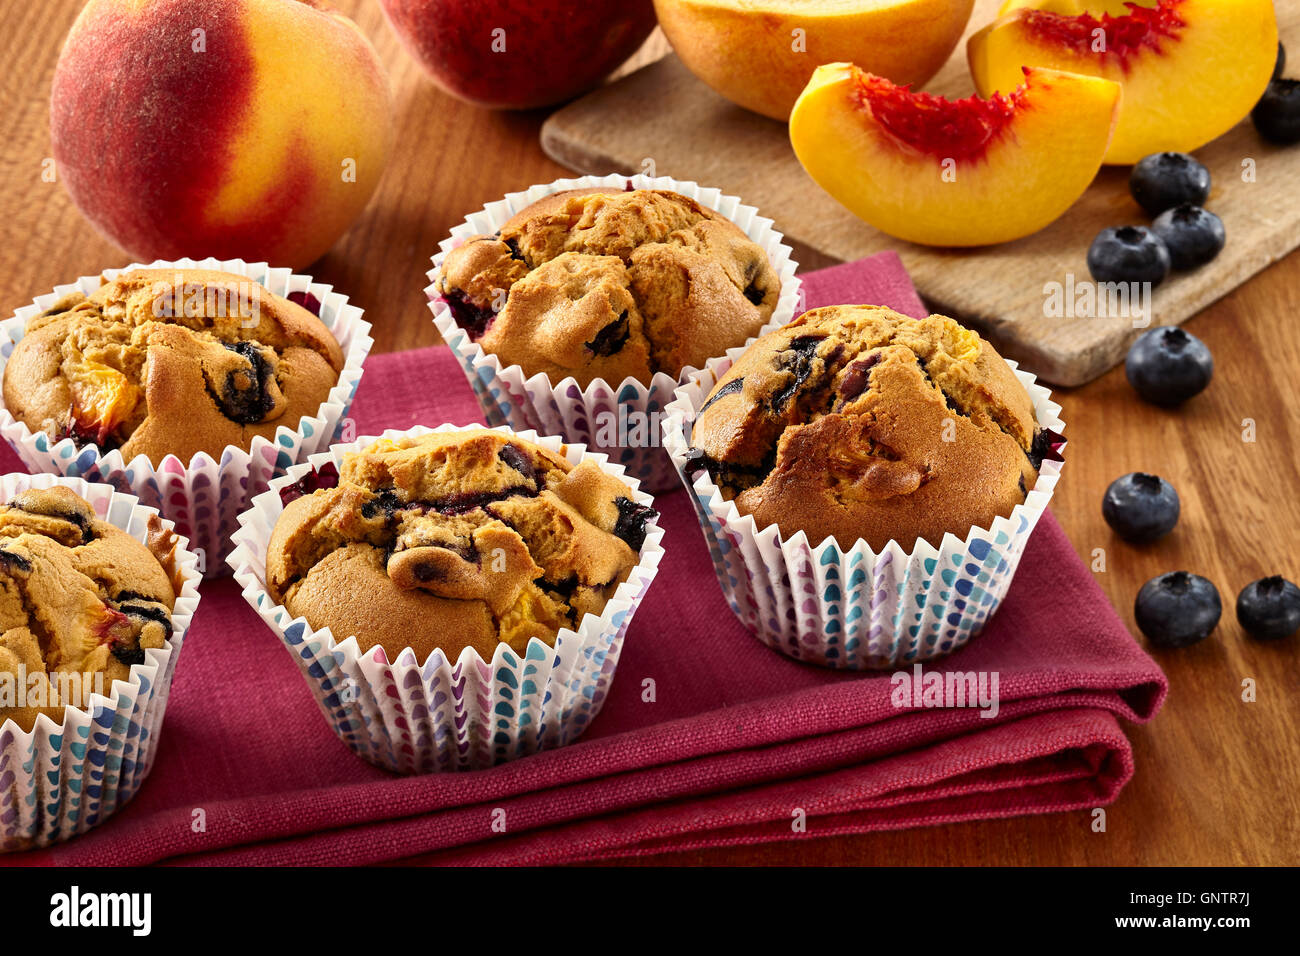 Peachy blueberry muffins - Stock Image